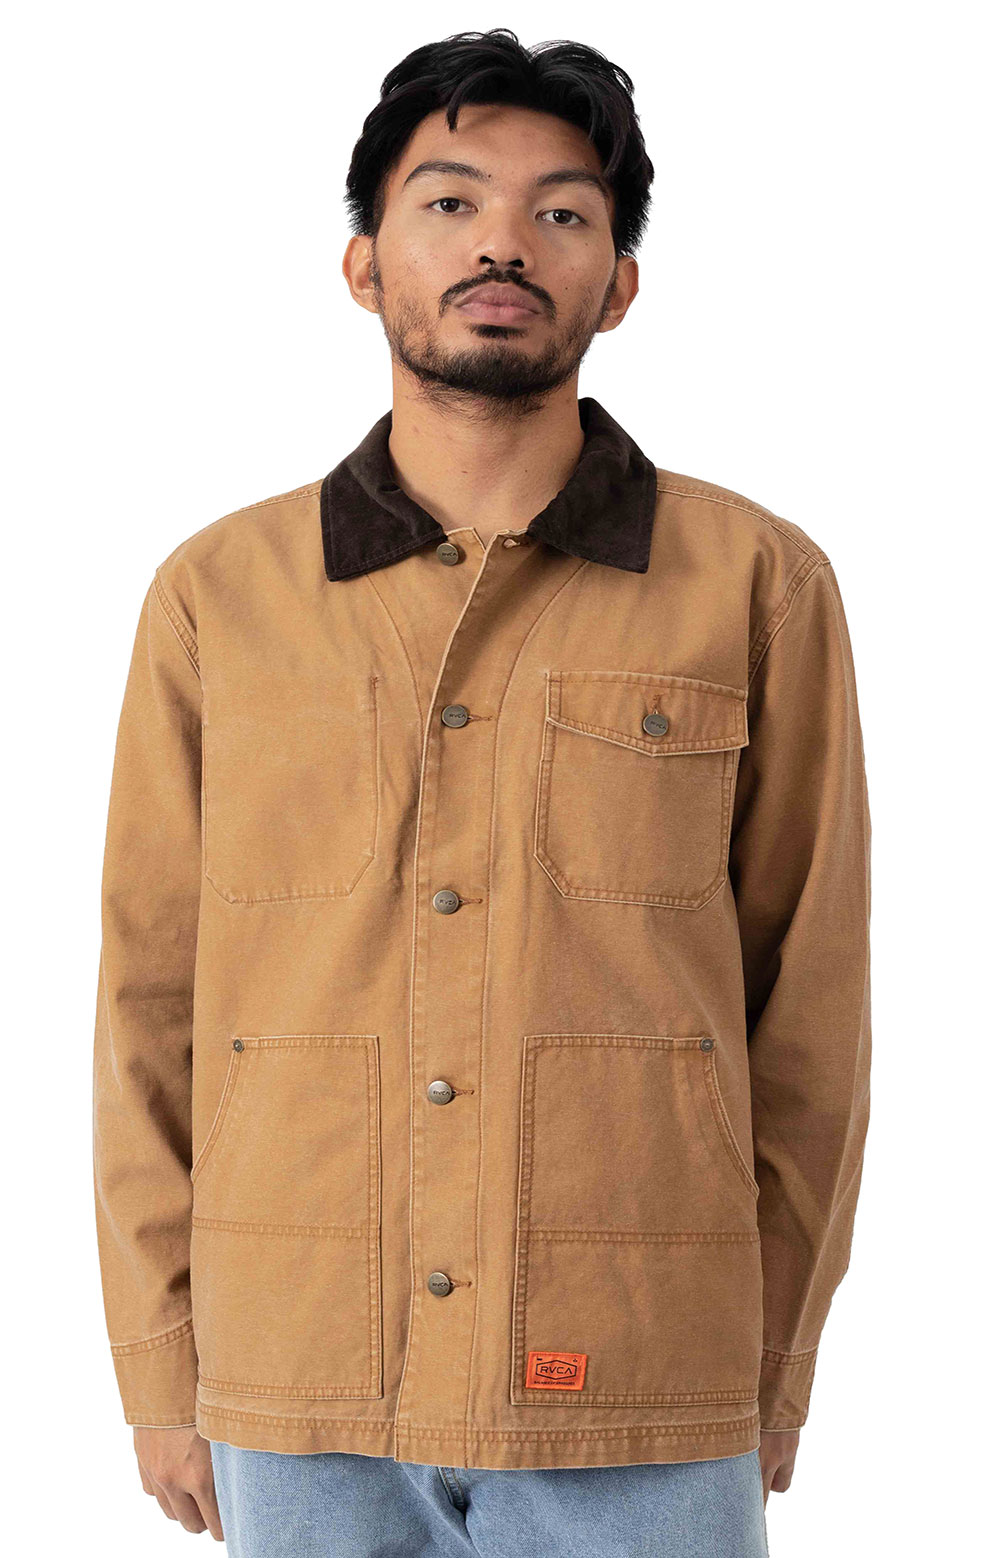 Chainmail Chore Jacket - Camel